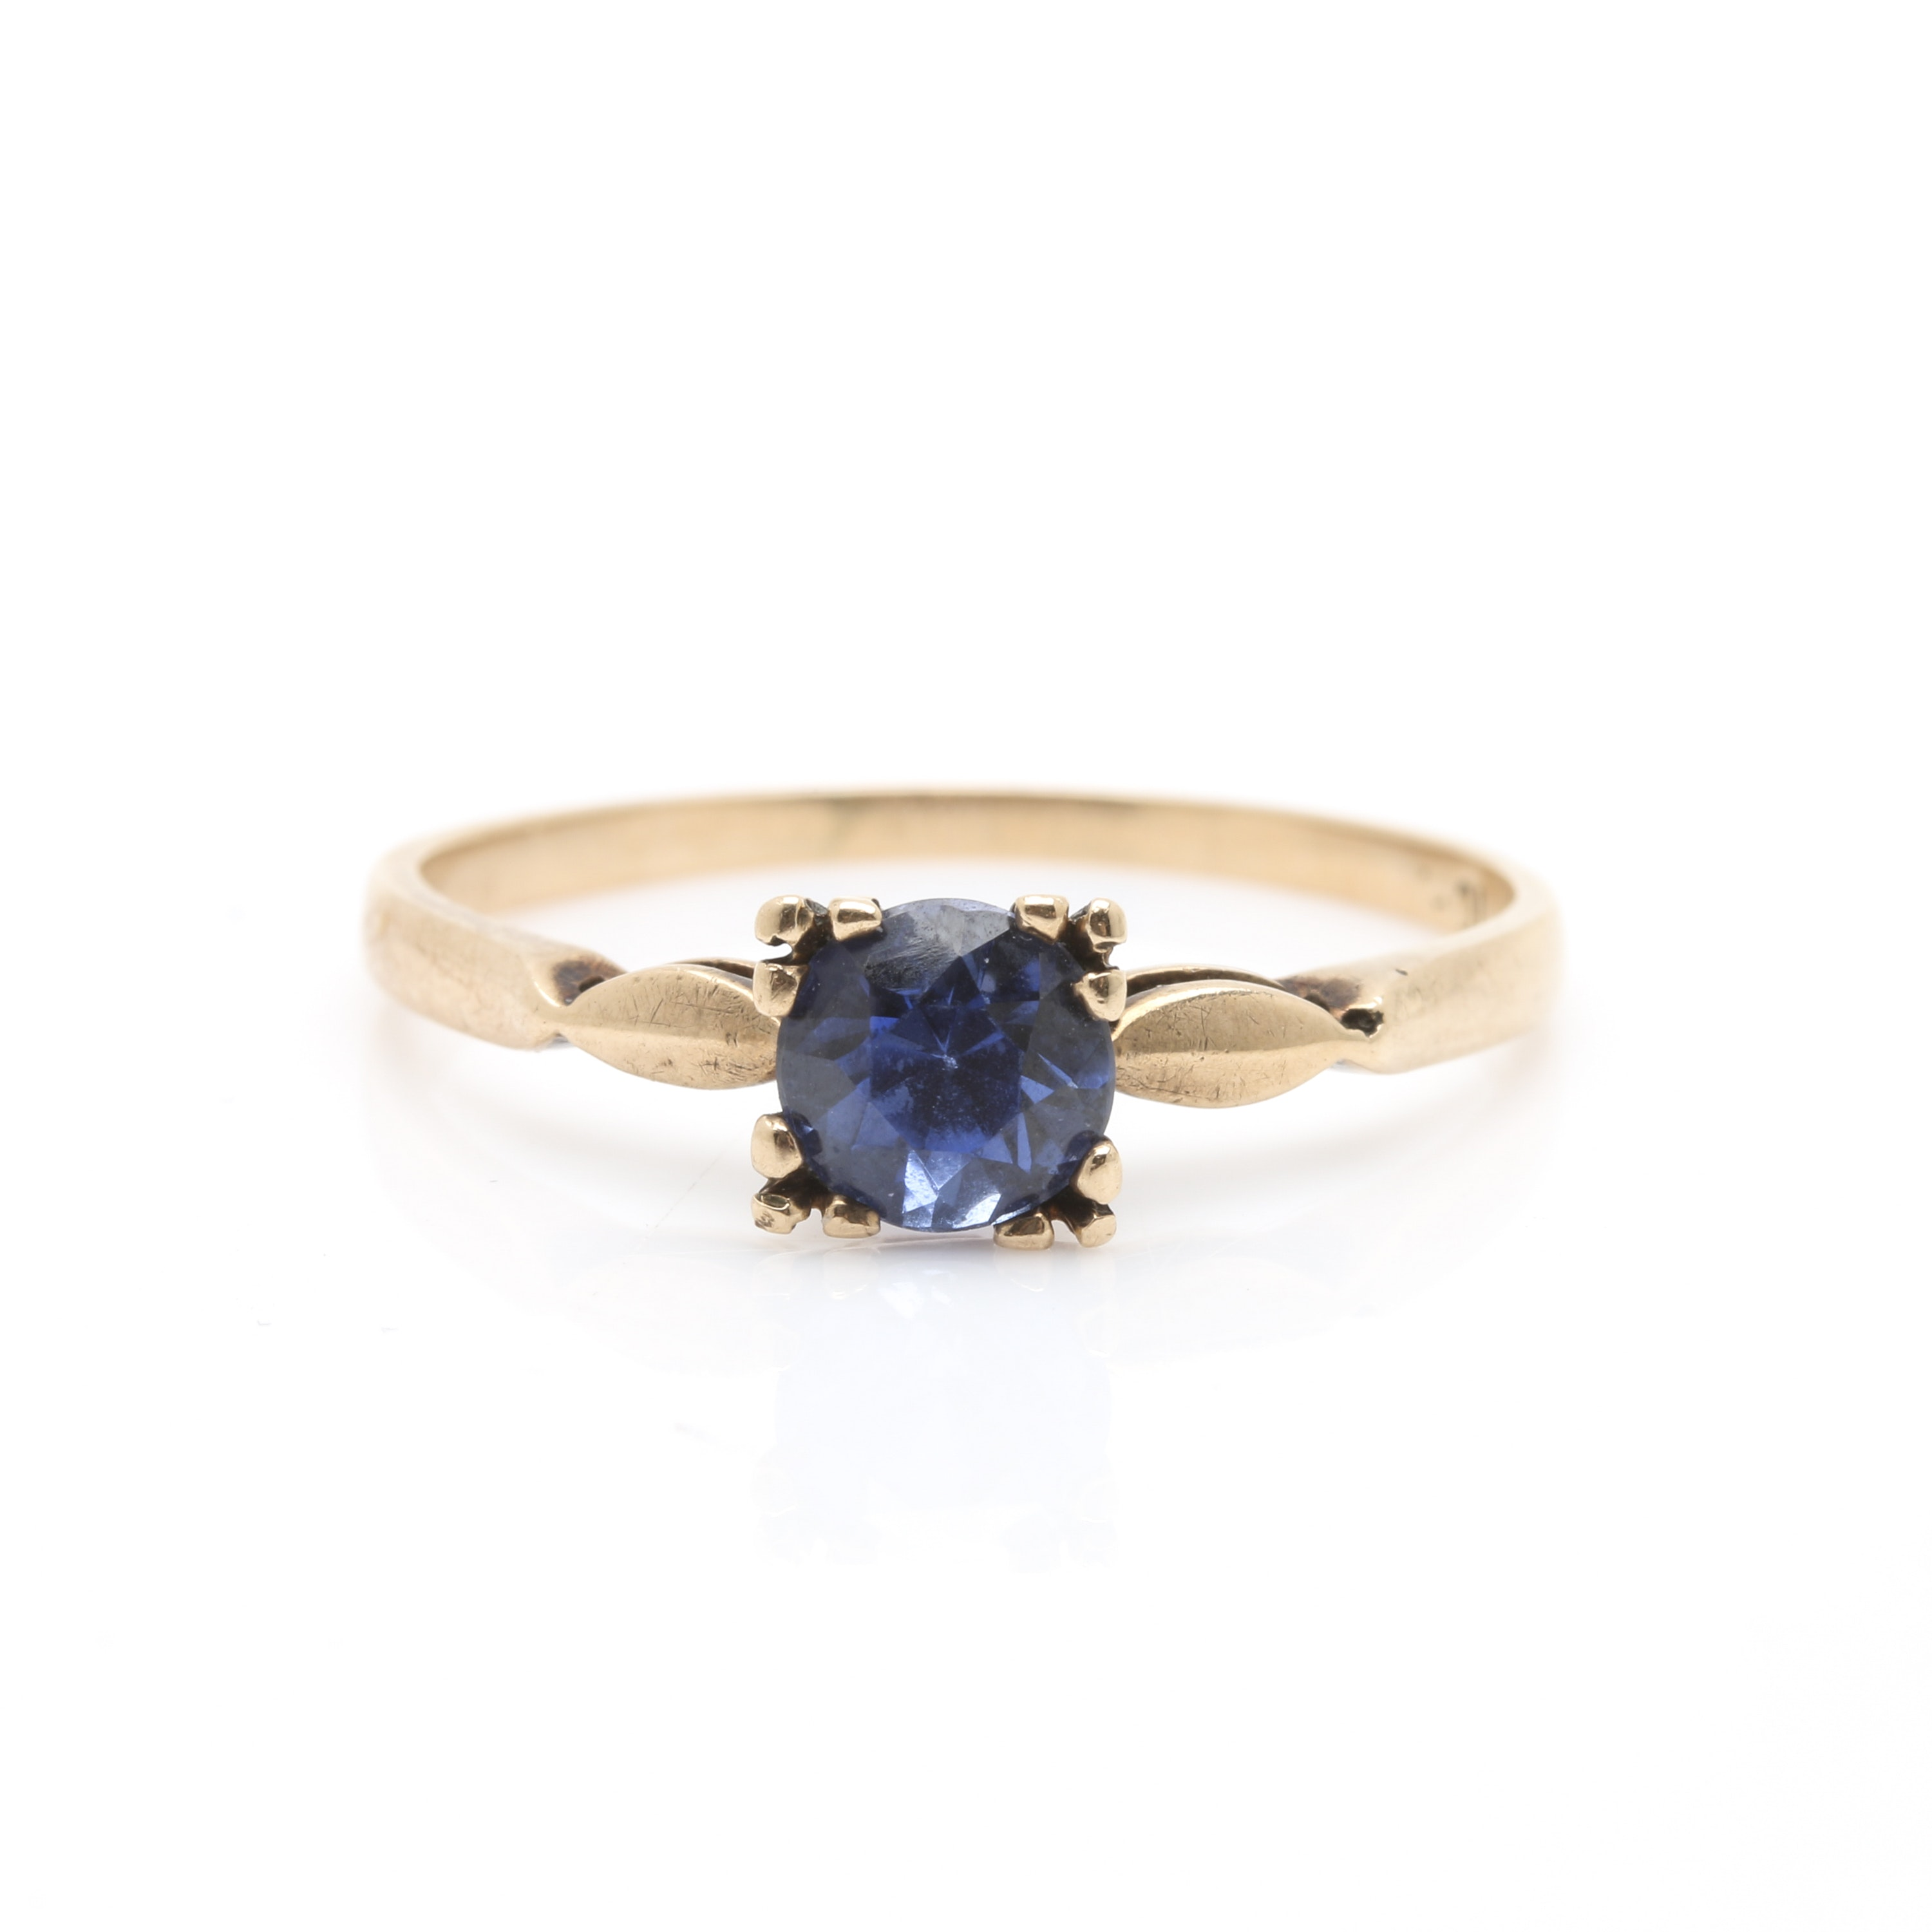 10K Yellow Gold Synthetic Sapphire Solitaire Ring